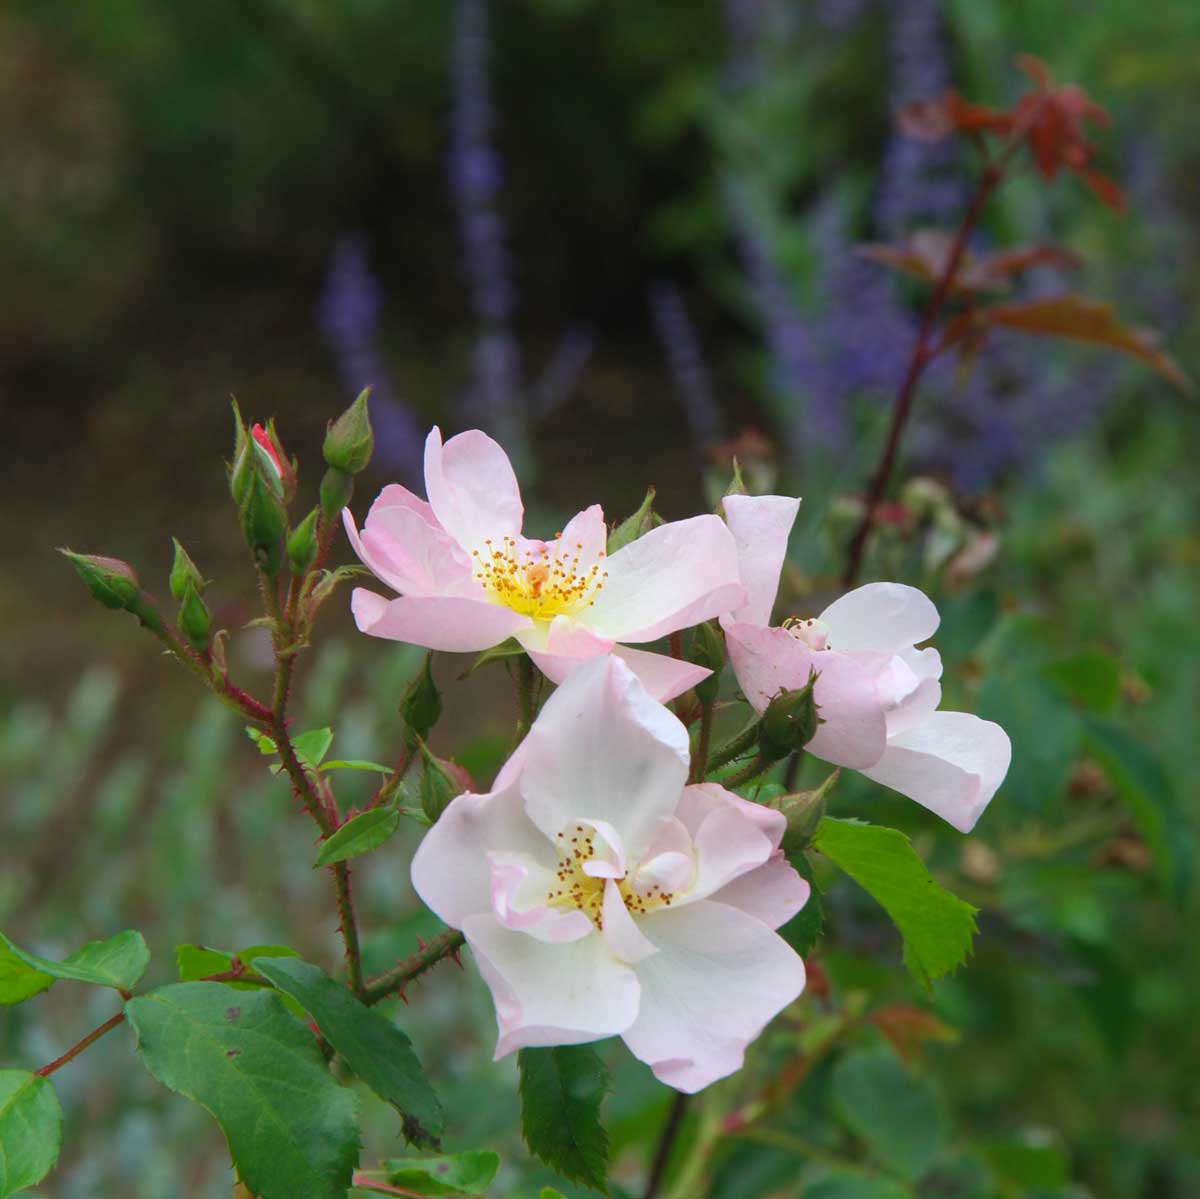 close-up on pale pink wild roses